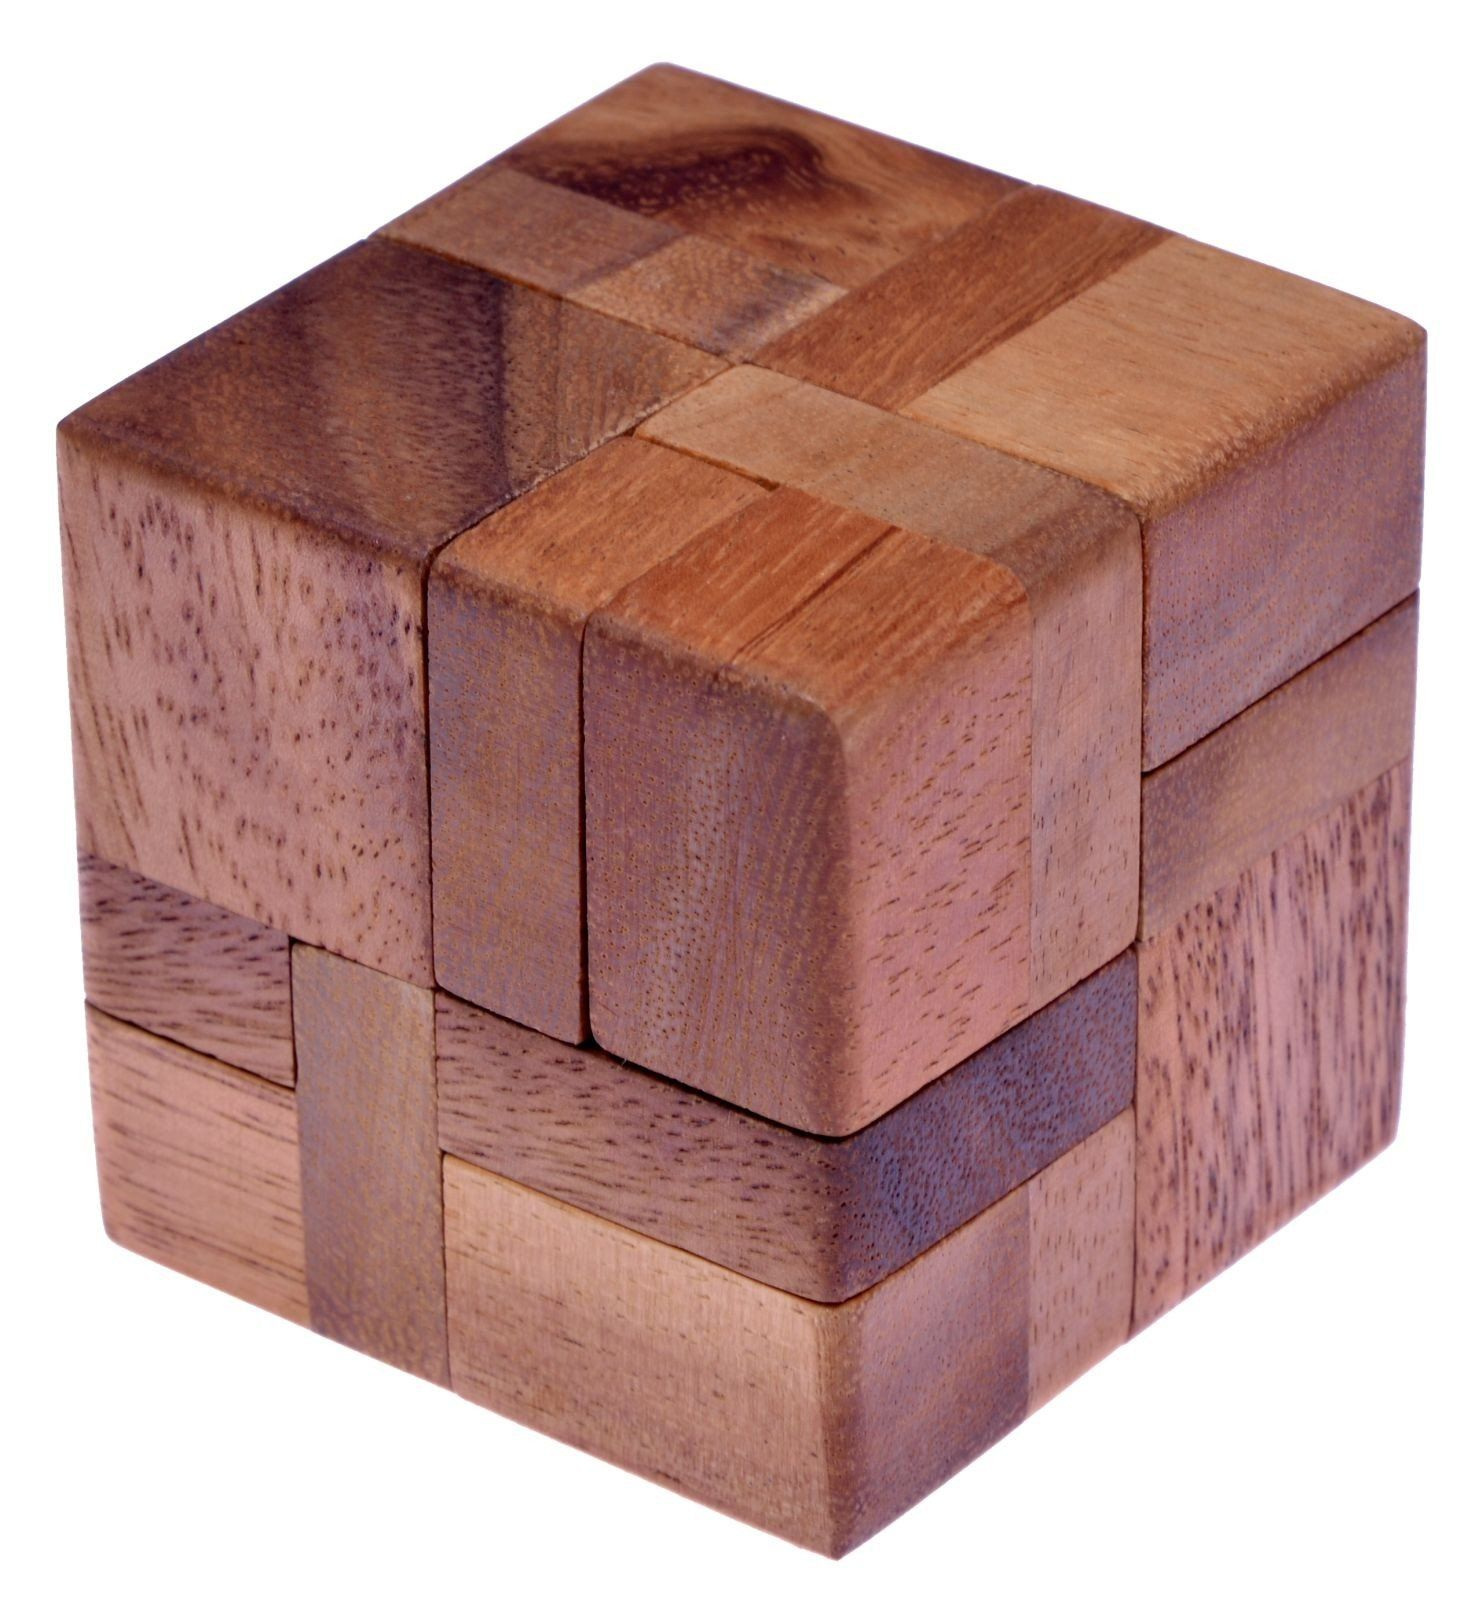 6 Piece Wooden Puzzle 3d Wooden Thing